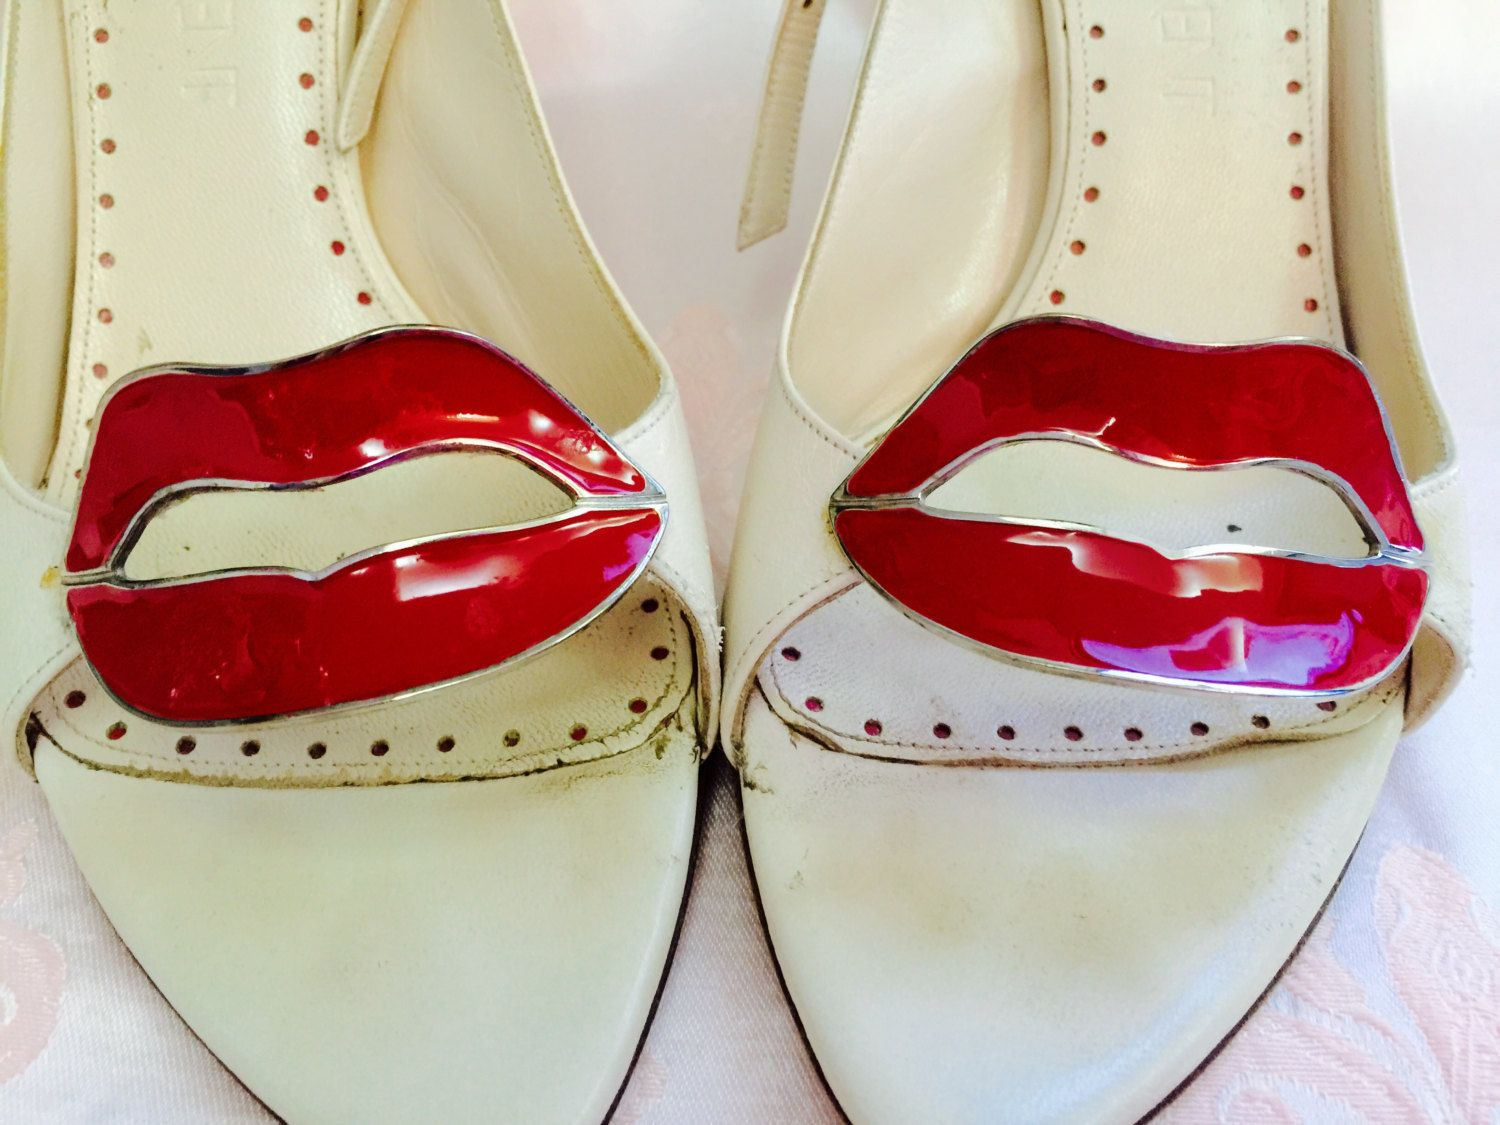 465fb89a Couture Super Rare Ysl Yves Saint Laurent High Heel Shoe red metal ...